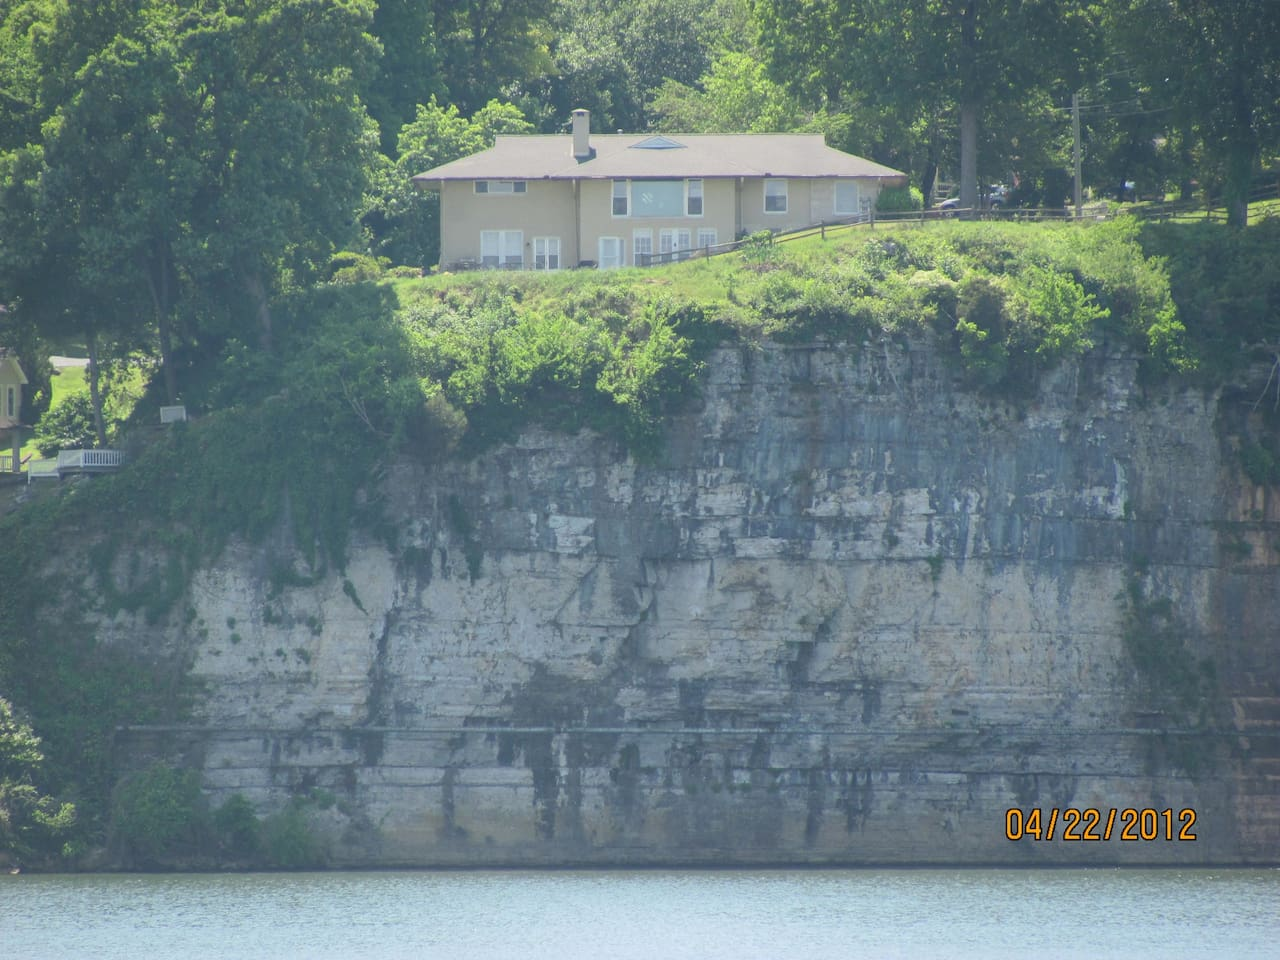 View of Muscle Shoals Music House from the Park across the River.